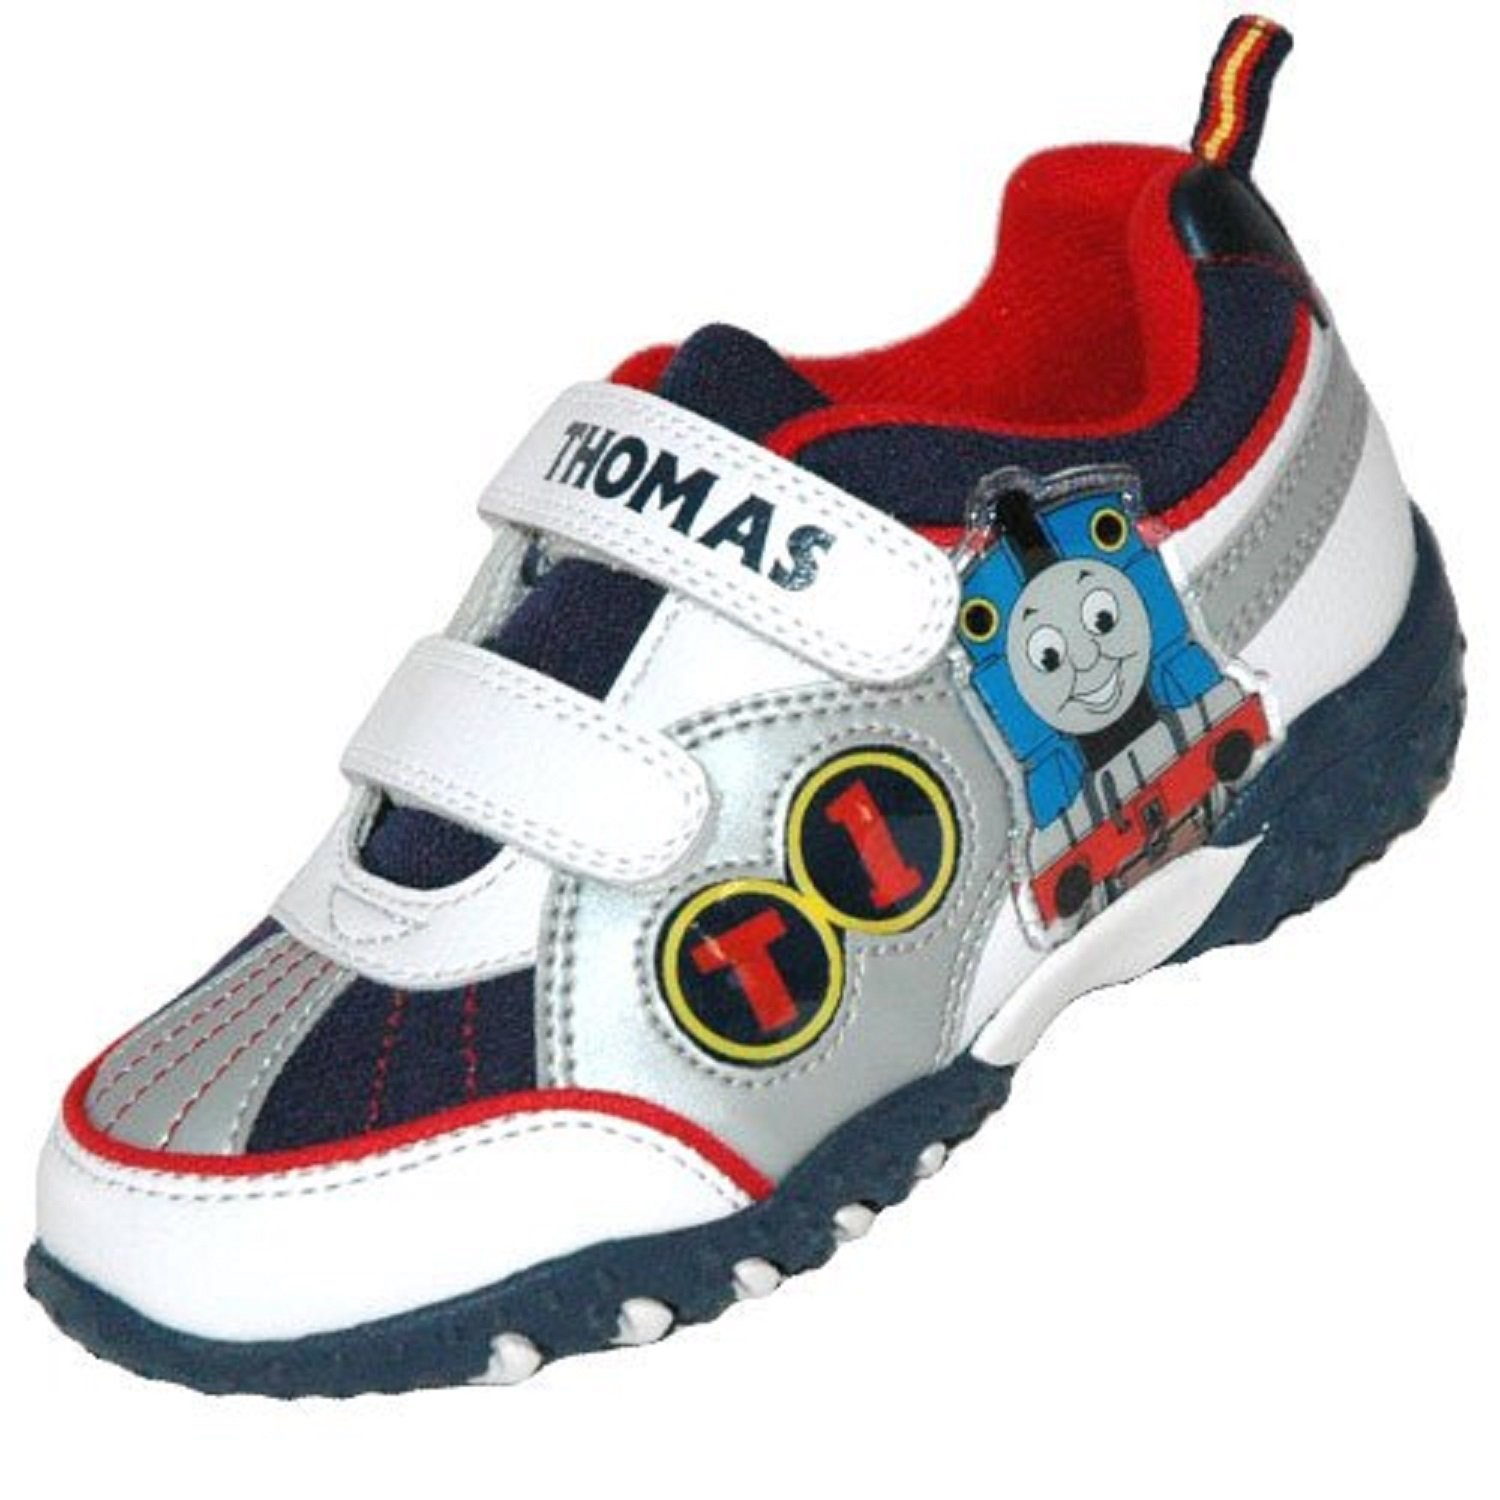 Thomas the Tank Engine Childrens Light Up Trainers 8 UK Infant